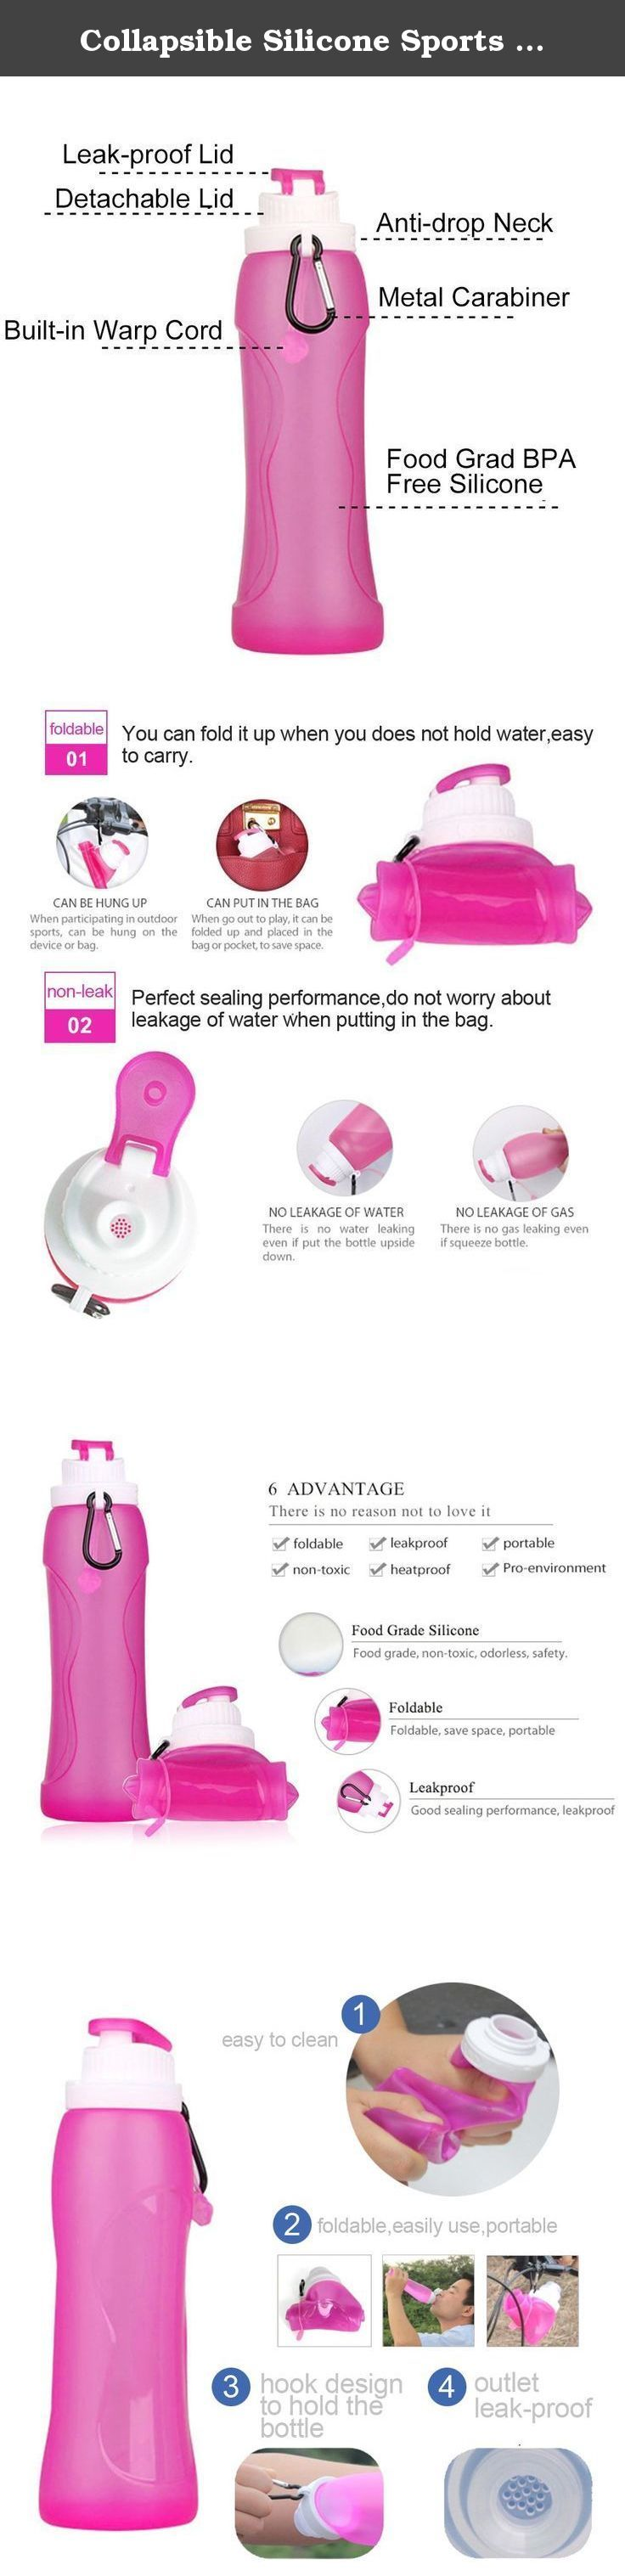 Collapsible Silicone Sports Water Bottles, Mami & Babi - BPA Free, FDA Approved, Eco Friendly, Leak Proof, Food Grade Safe - for Hiking, Camping, Cycling, Amusement Parks (Pink, 1 pack 500 ml / 17 oz). About Mami & Babi: Welcome to buy our products, this is Mami & Babi which always focus on the series of the Food Grade Silicone including Silicone Teething Necklaces, Silicone Teething Bracelets, Silicone Travel Bottles, Silicone Foldable Bottles. Each of our product is manufactured by a...